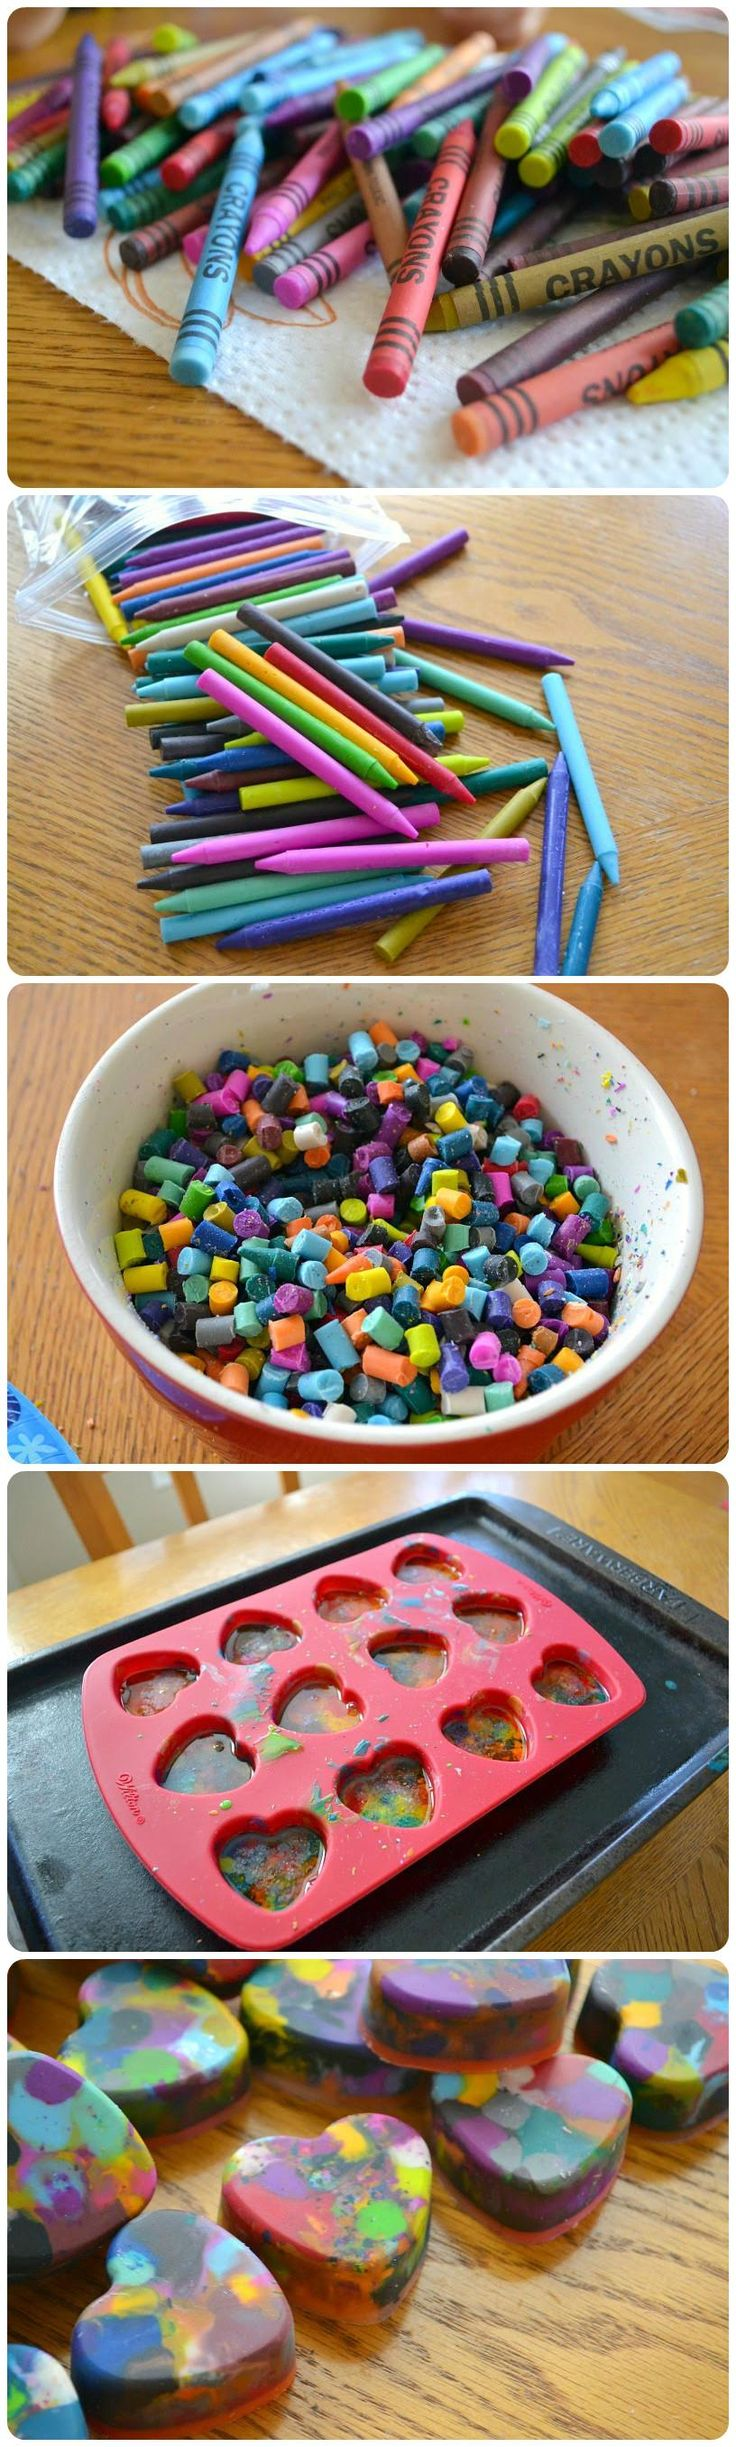 This Valentine's Day heart crayon DIY will melt your heart.